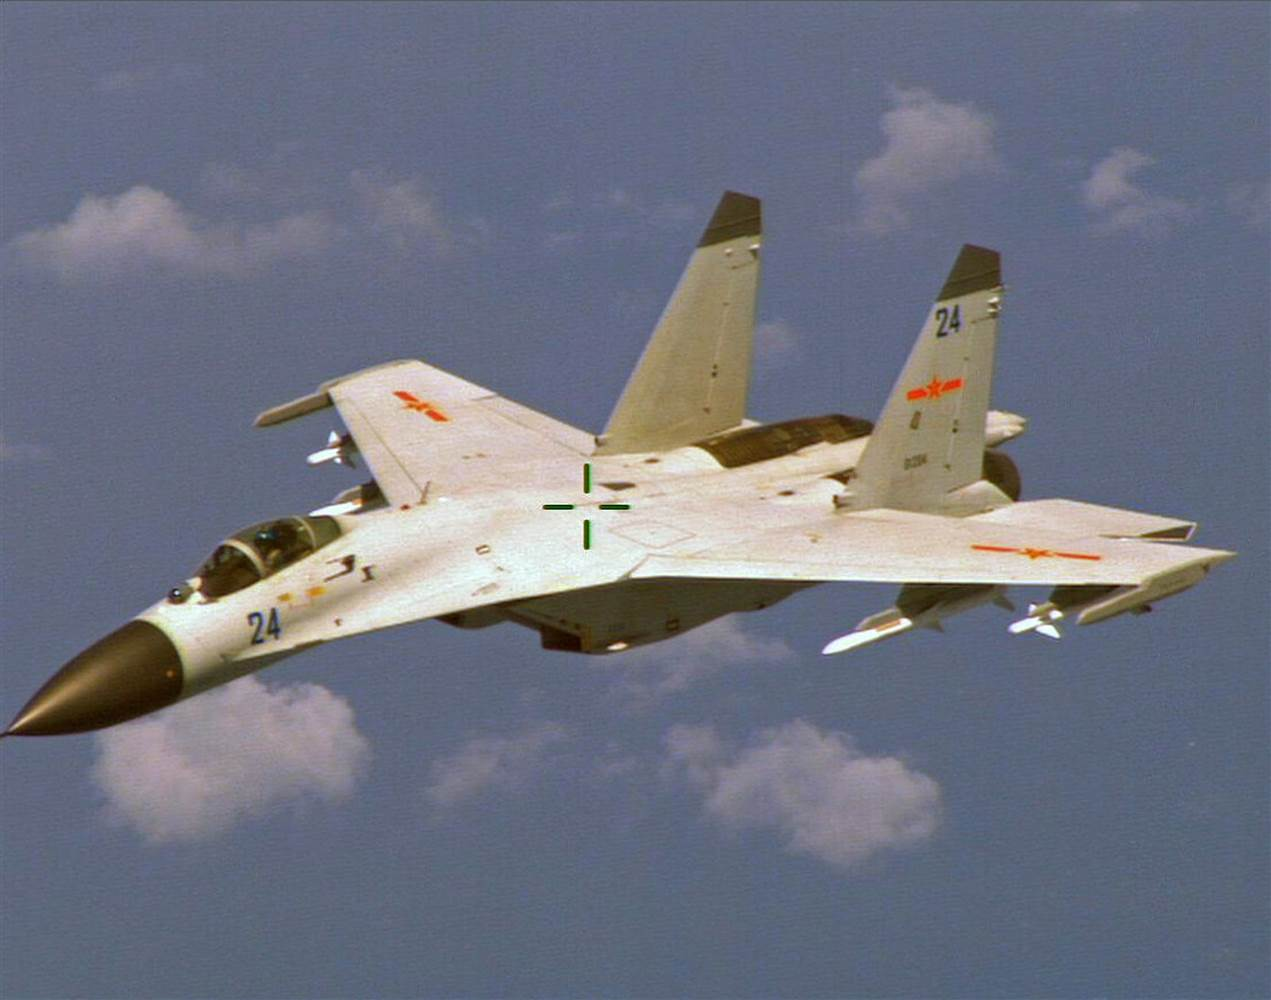 Chinese Jets Intercept U.S. Spy Plane Over South China Sea